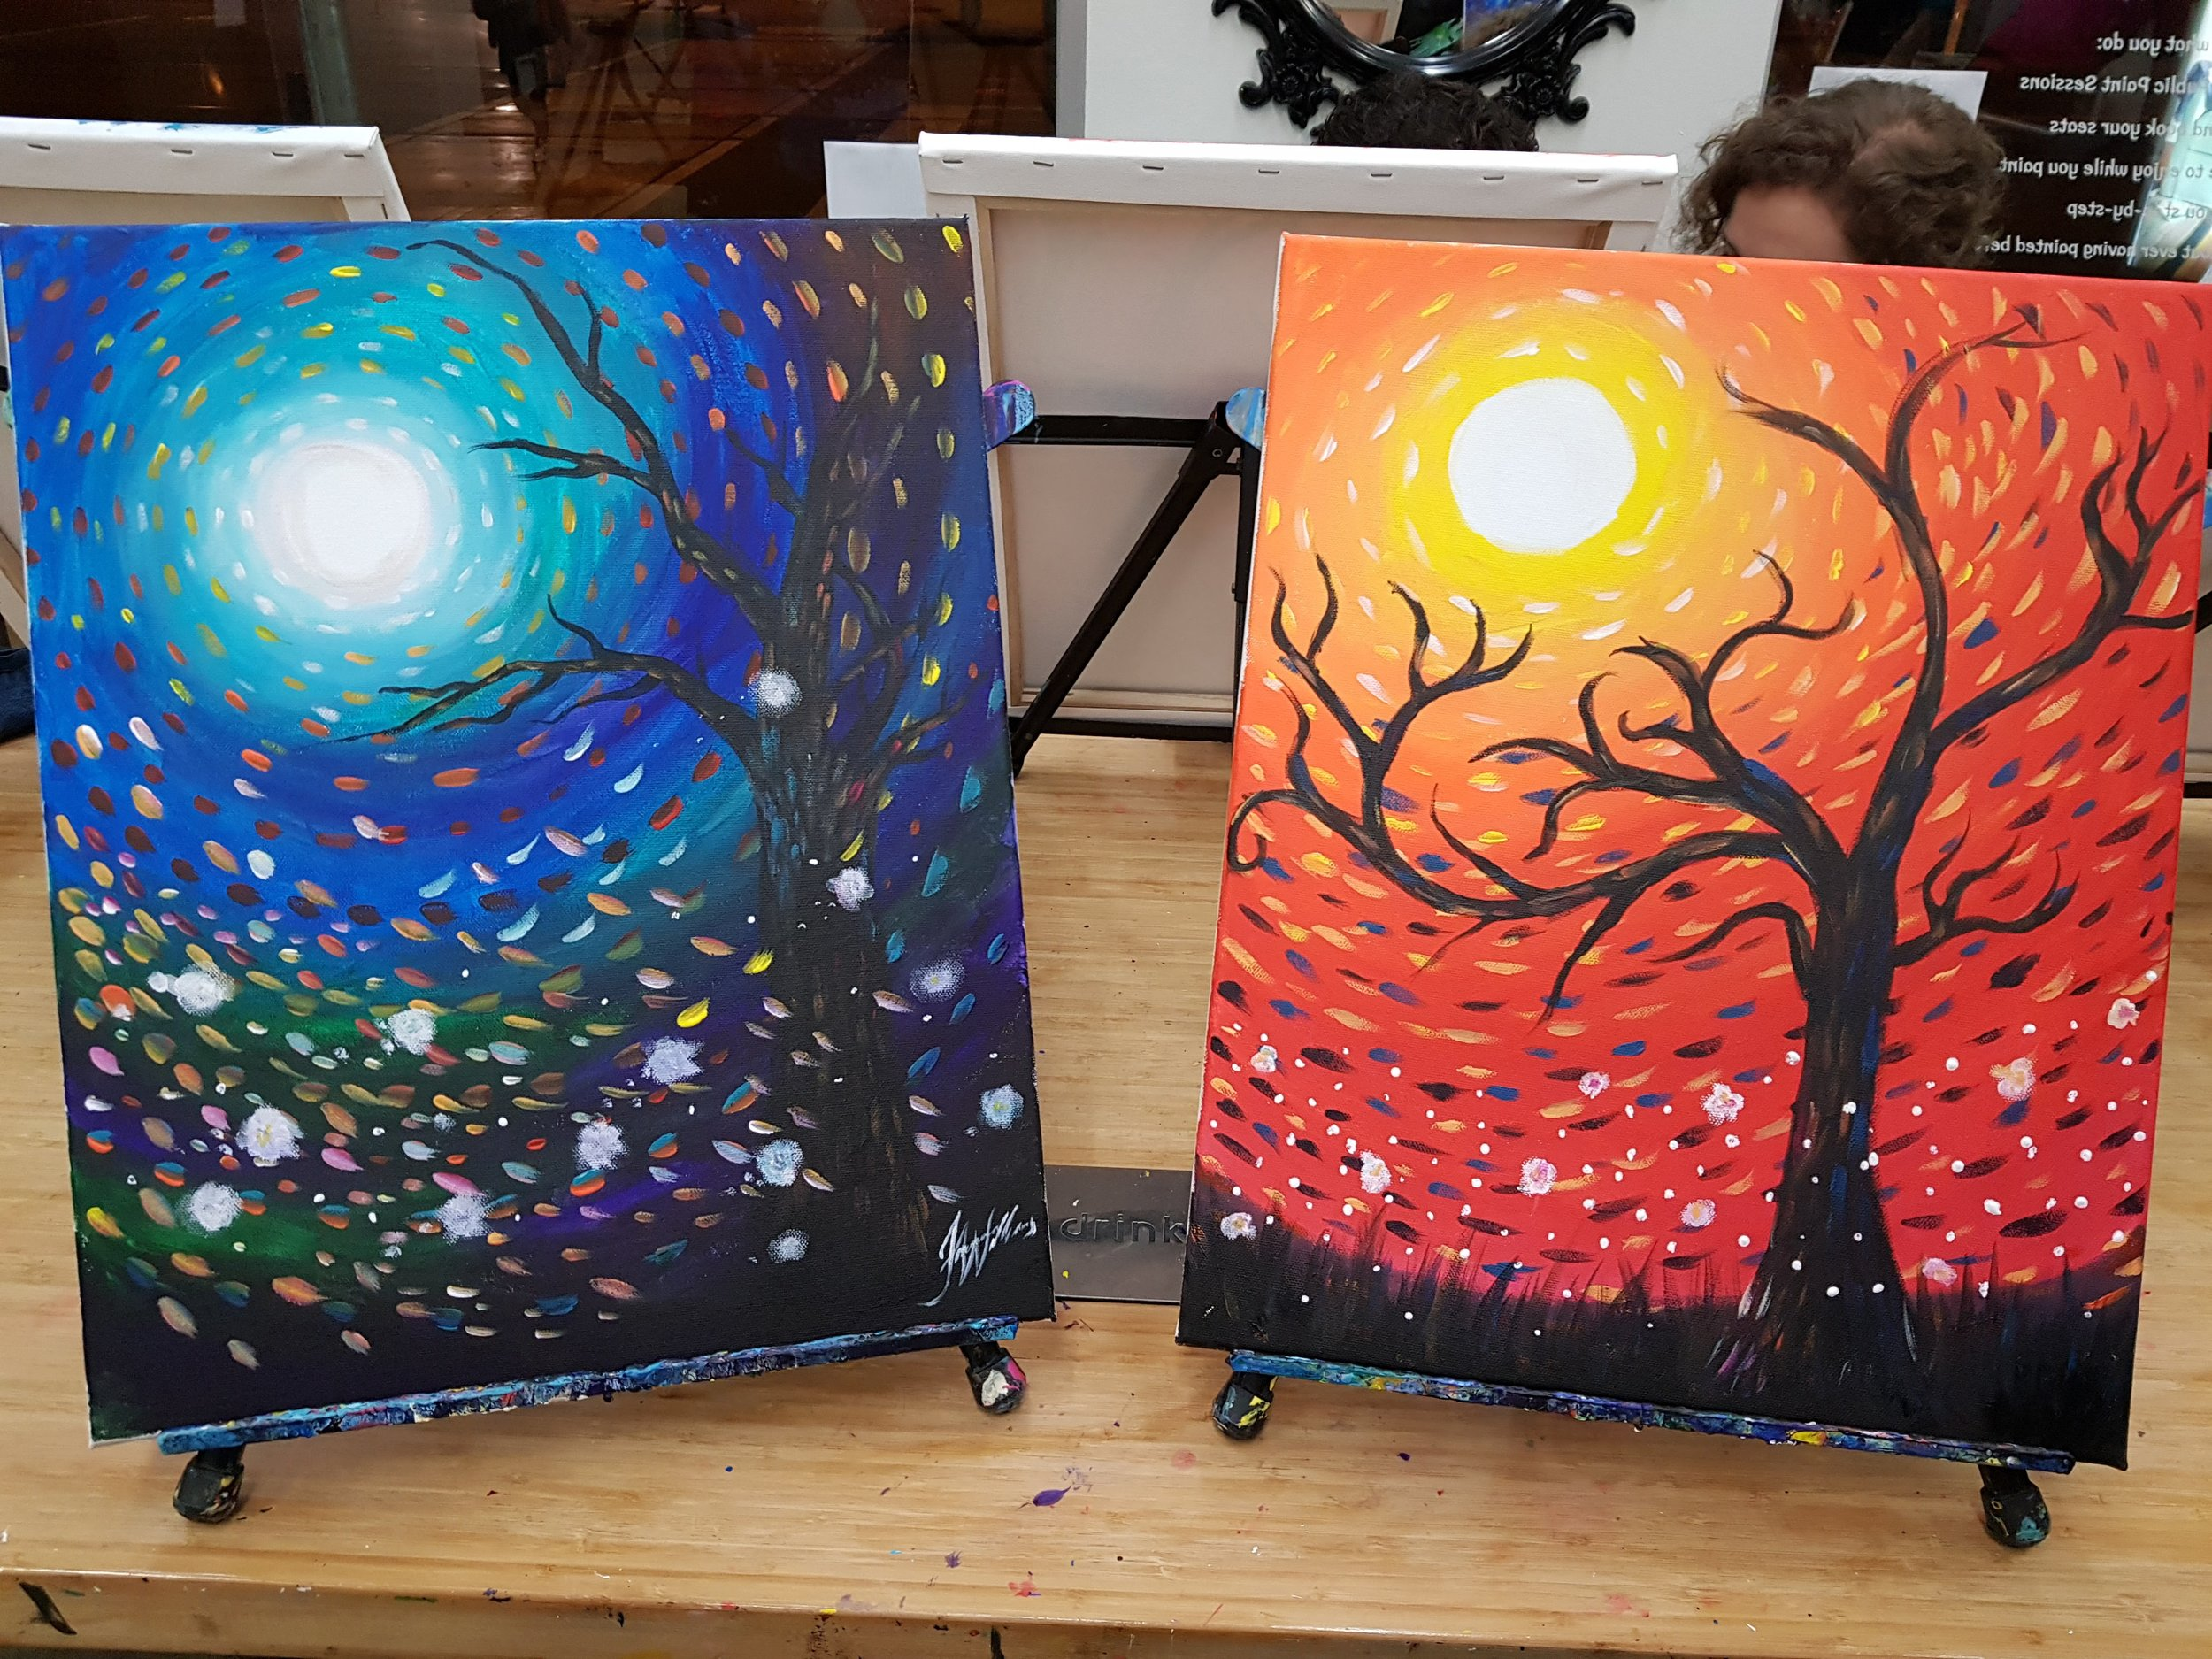 Acrylics - One of the first sessions we did together was an acrylics session where we painted tree silhouettes.Li's painting is the one on the right and if you can believe it, this was her first ever painting. Ever.The next acrylic session we did together was a 'paint your mate' session, where the portrait style was quite stylised. It was mean to be in the style of Pablo Picasso, but my painting of Li ended up looking like something out of Futurama!